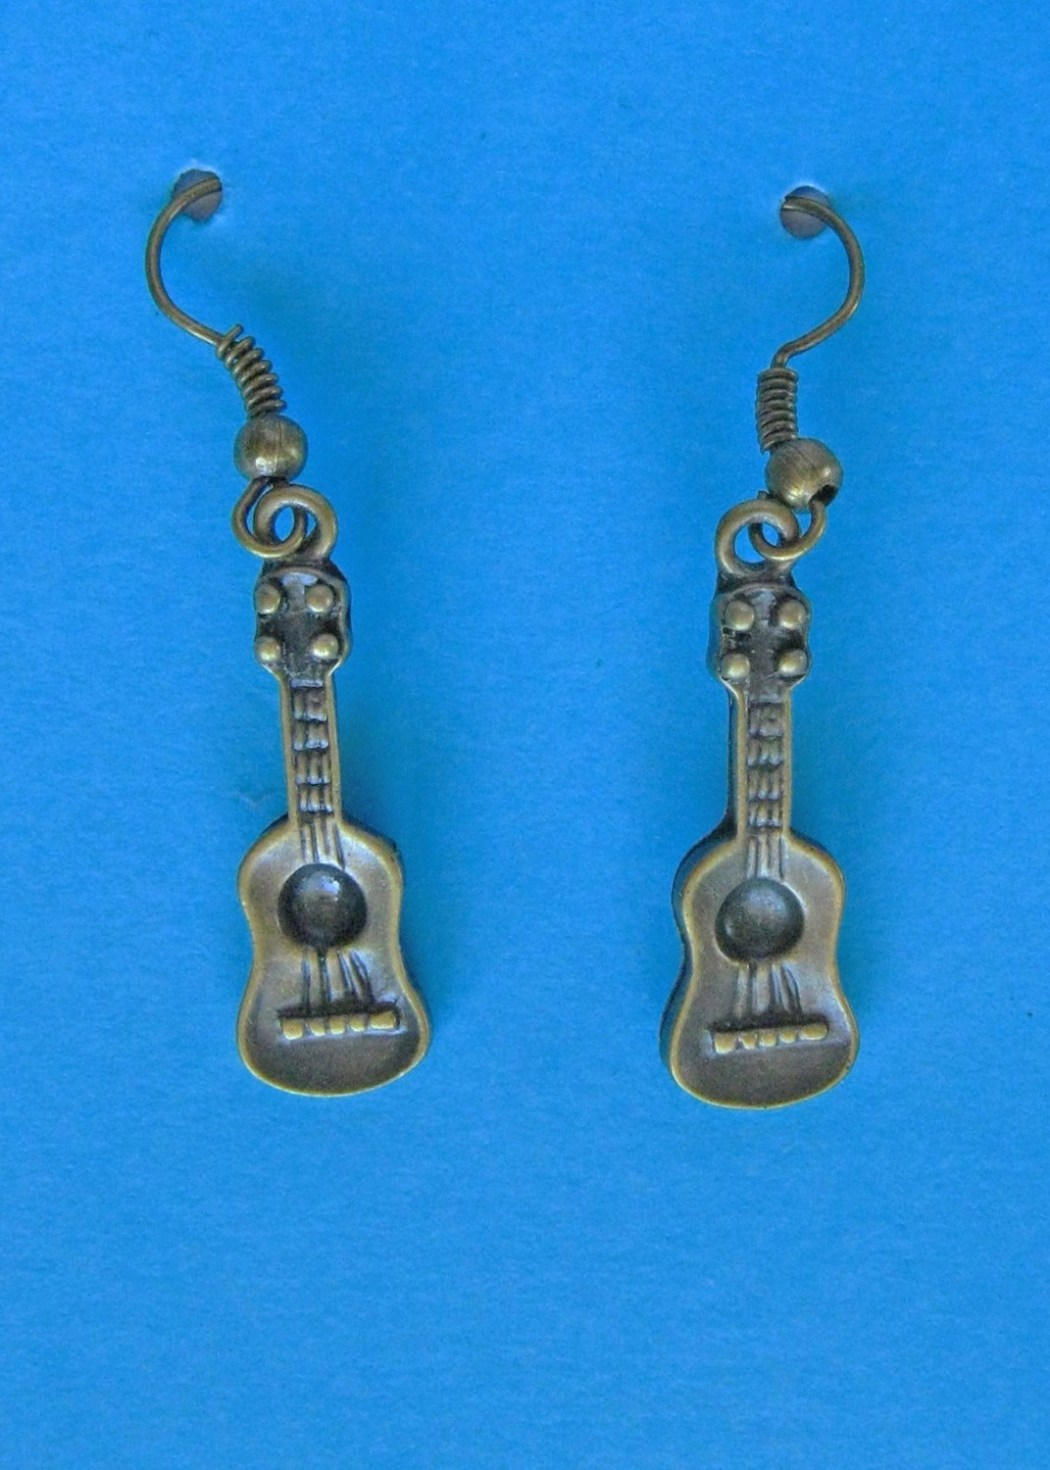 Bronze Ukulele Earrings